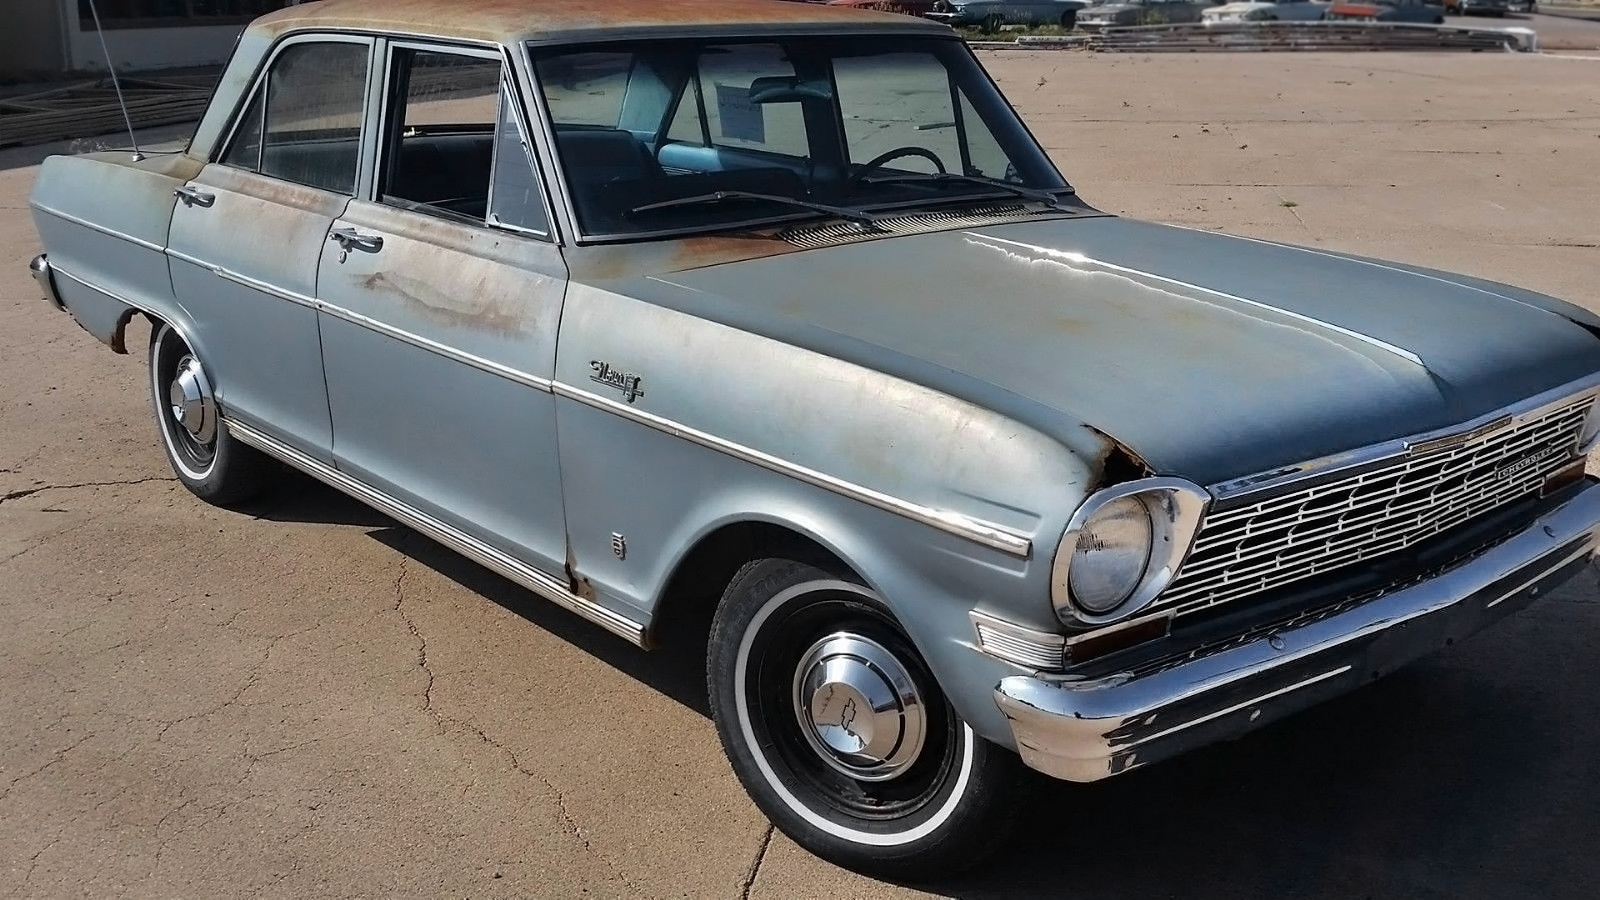 All Chevy 64 chevy ii : Stored for 38 Years: 1962 Chevrolet Corvair Monza